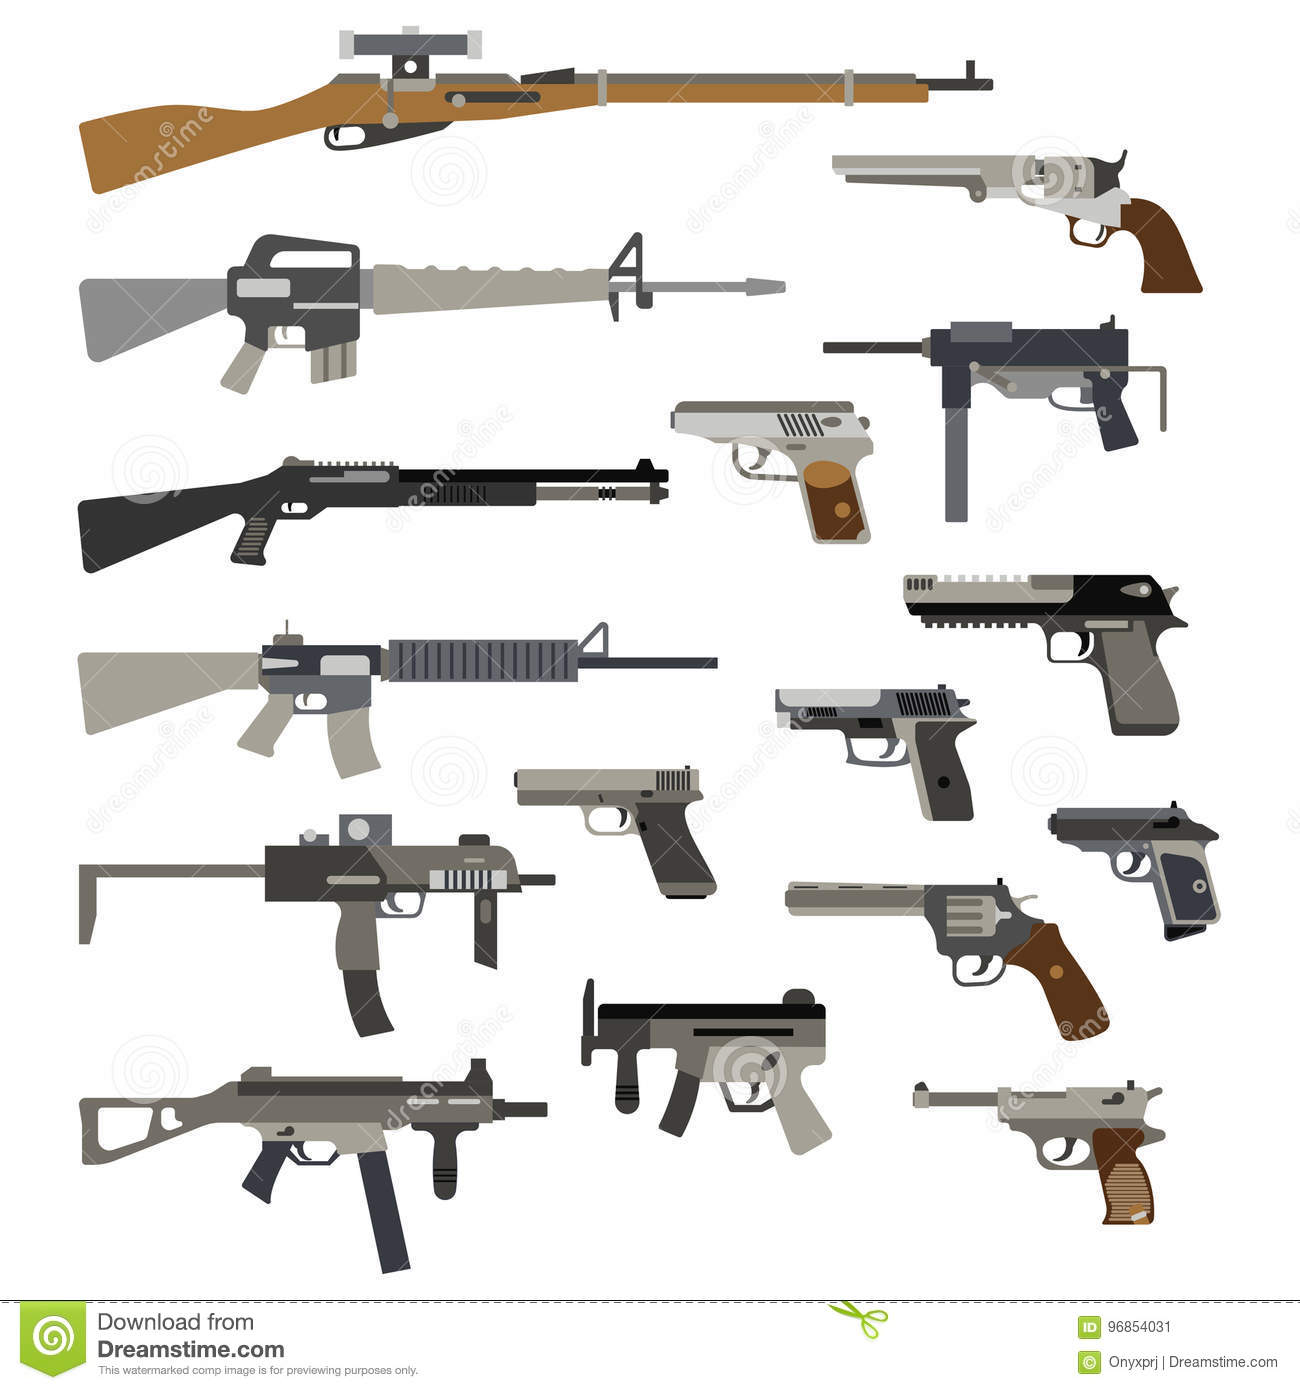 Different Automatic Weapons Vector Illustration Of Guns And Pistols